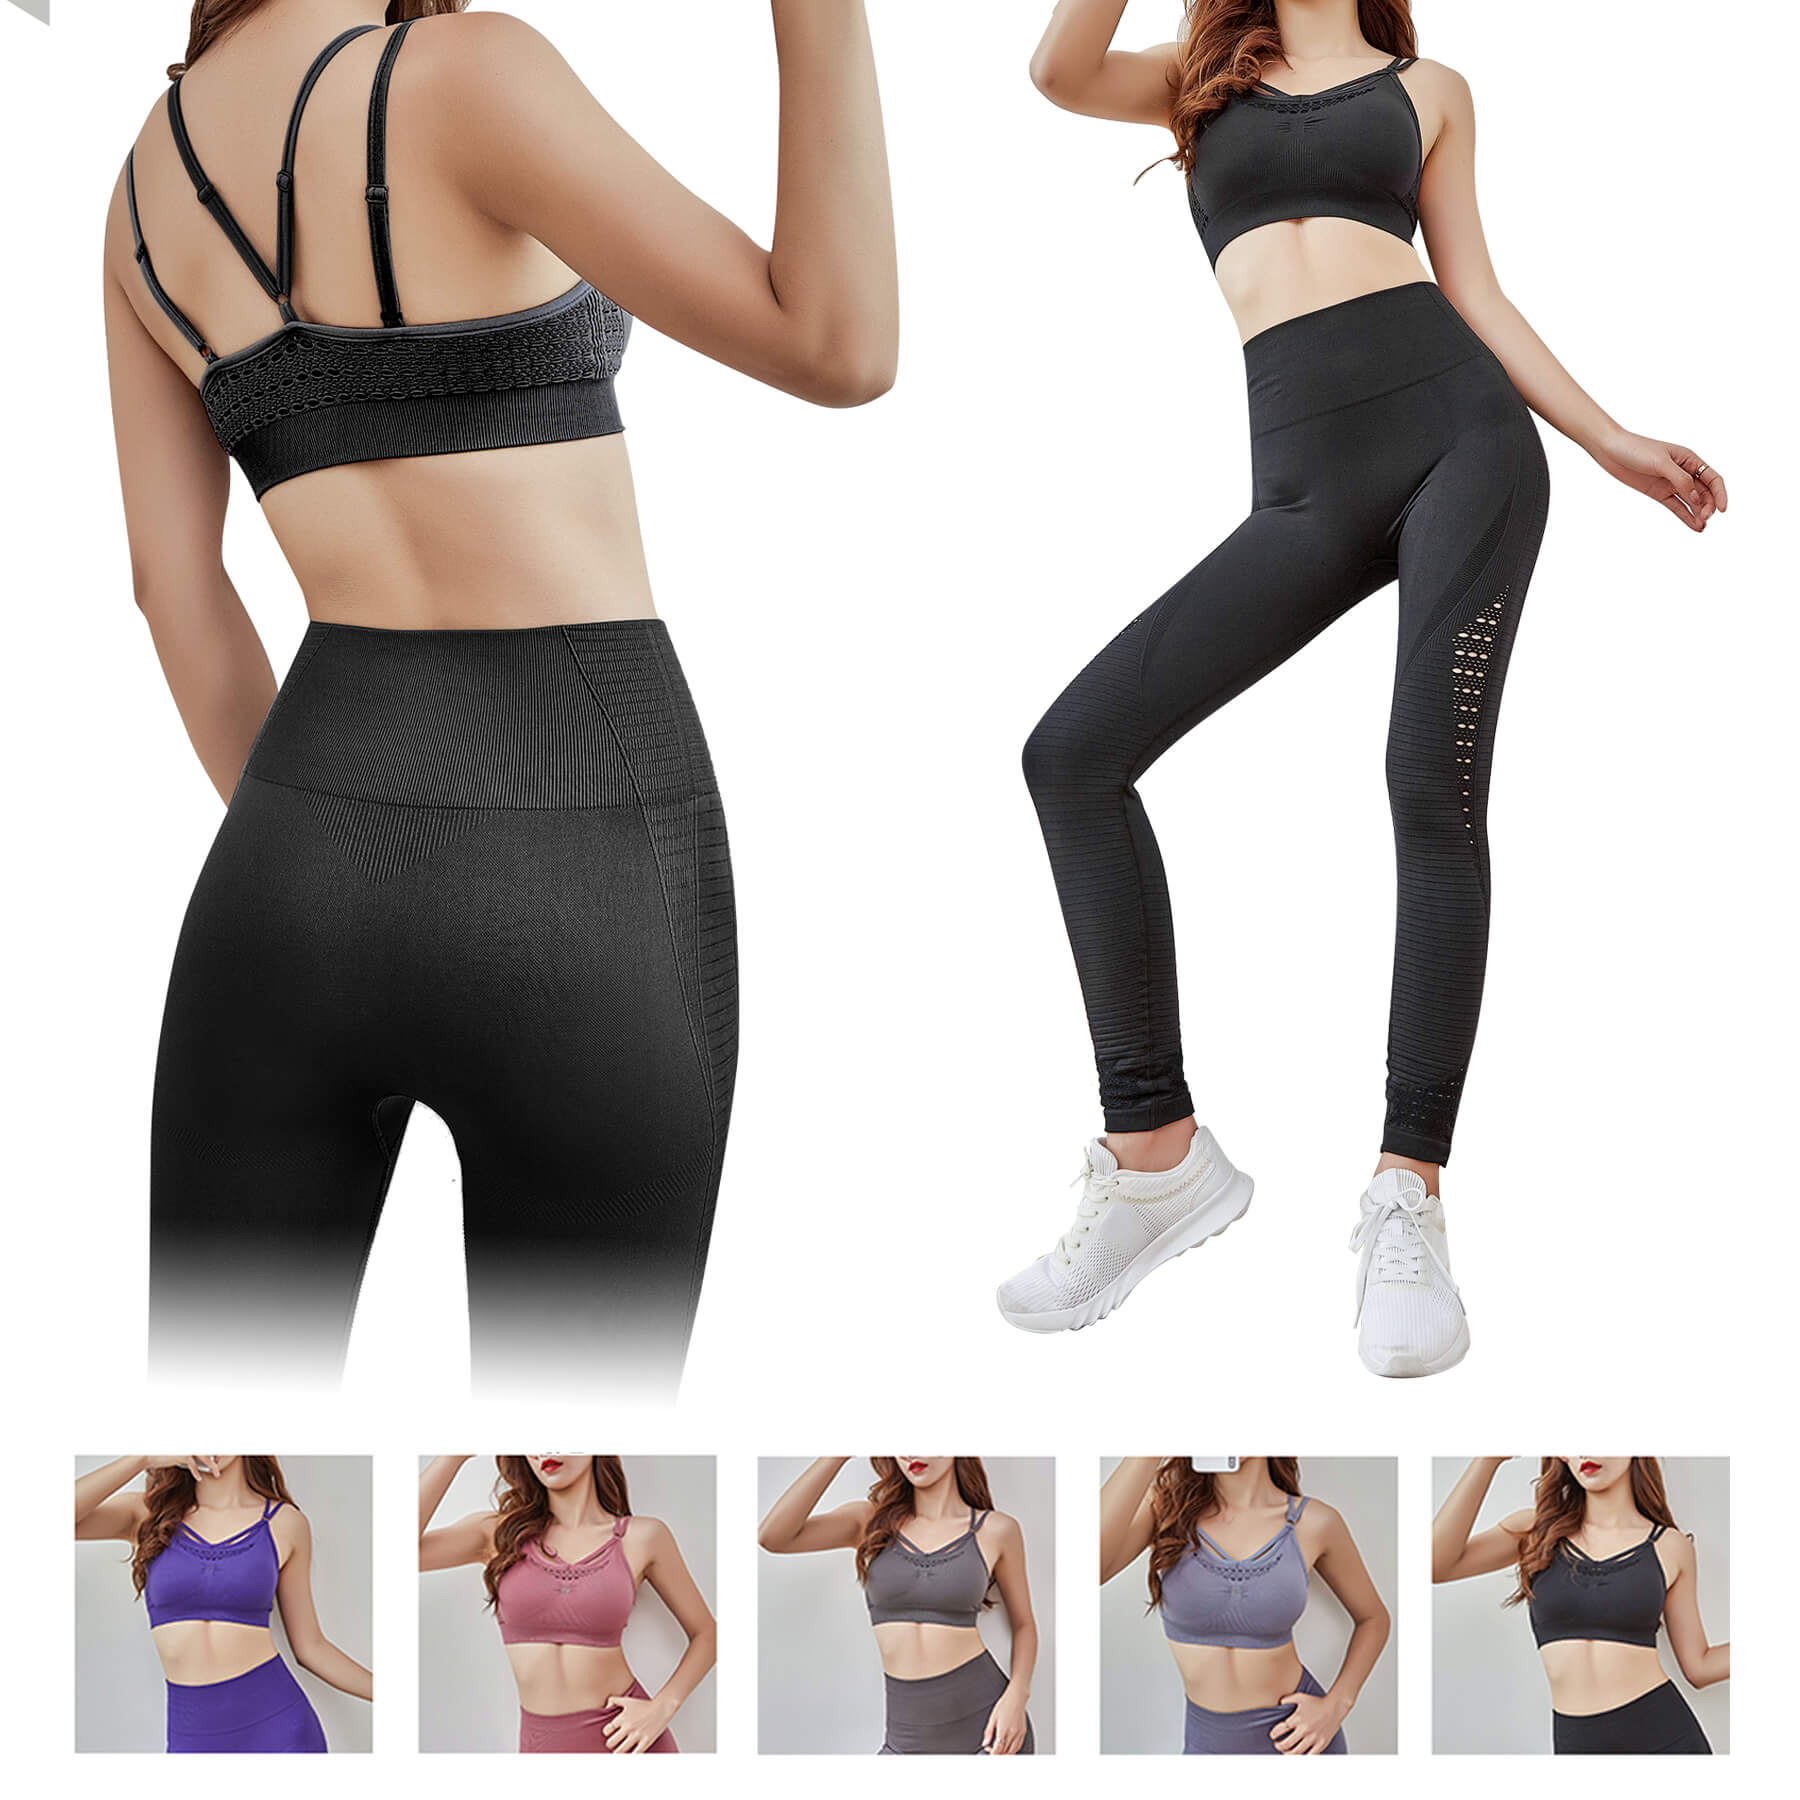 Women's Fitness Yoga Suit With Bra and Pants - Women's Fitness Yoga Suit With Bra and Pants